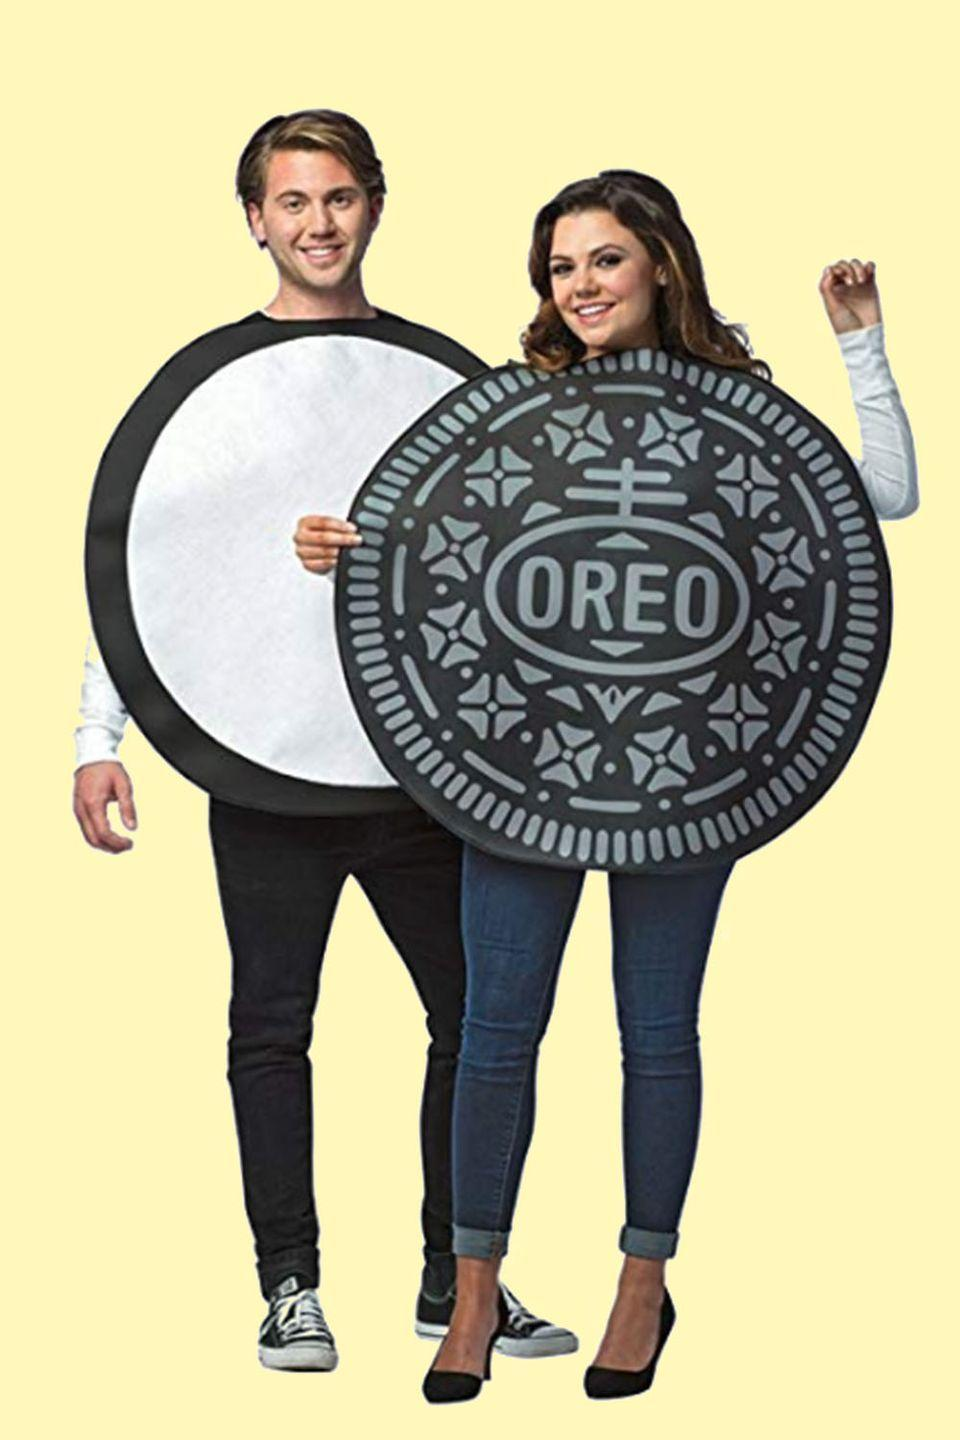 """<p>Give it up for milk's favorite cookie! Sandwiched together, you and your partner instantly become the double-stuffed variety. </p><p><a class=""""link rapid-noclick-resp"""" href=""""https://www.amazon.com/Faerynicethings-Adult-Cookie-Couples-Costume/dp/B074WGGZBF/ref=sr_1_3?tag=syn-yahoo-20&ascsubtag=%5Bartid%7C10055.g.2625%5Bsrc%7Cyahoo-us"""" rel=""""nofollow noopener"""" target=""""_blank"""" data-ylk=""""slk:SHOP OREO COSTUME"""">SHOP OREO COSTUME</a></p>"""